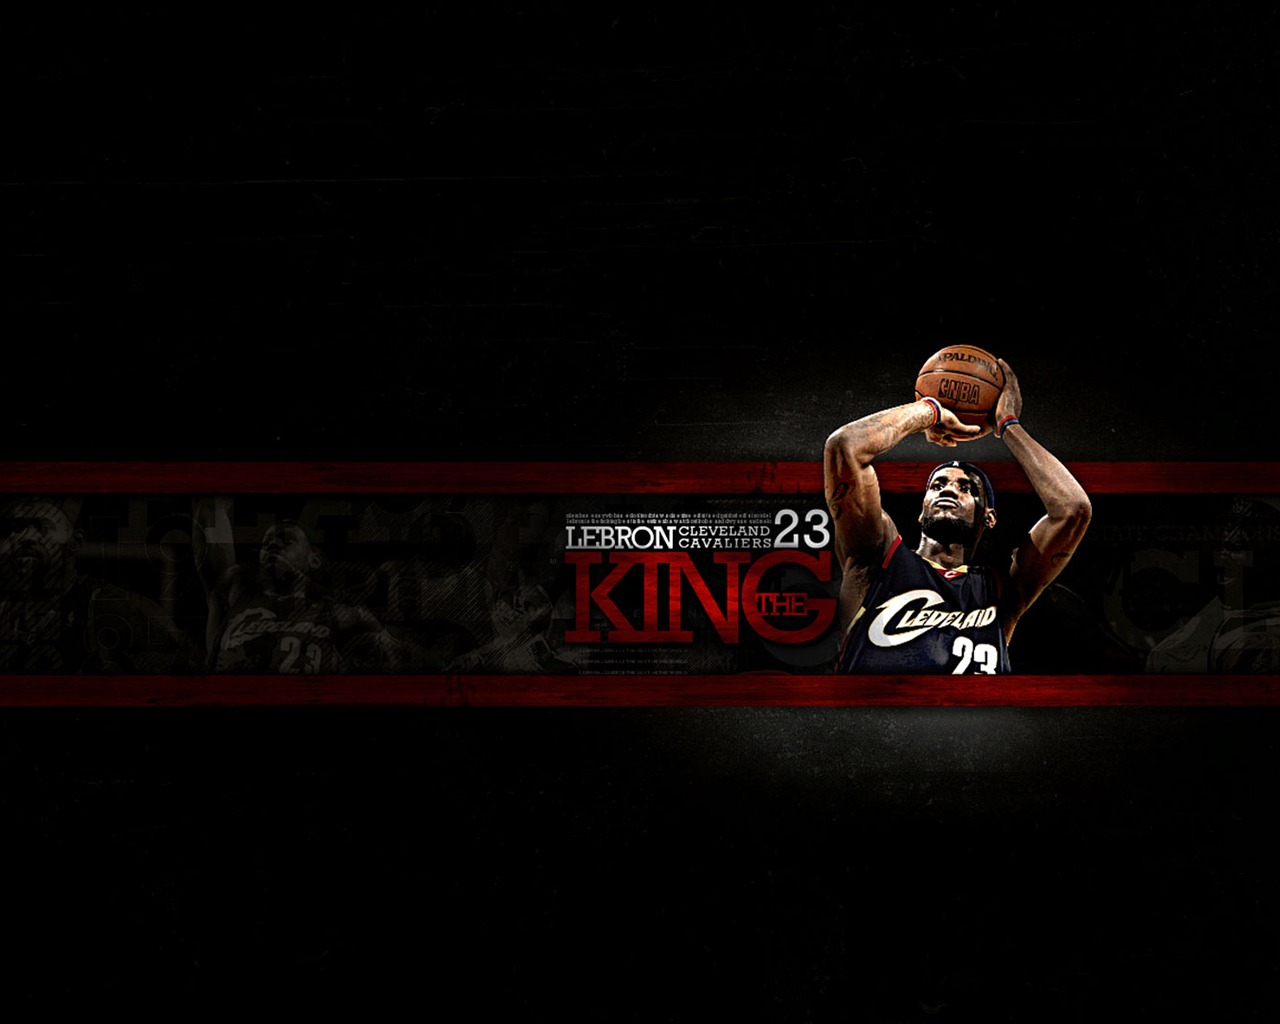 Lebron james wallpaper nba sports wallpapers in jpg format for lebron james wallpaper nba sports wallpapers voltagebd Image collections